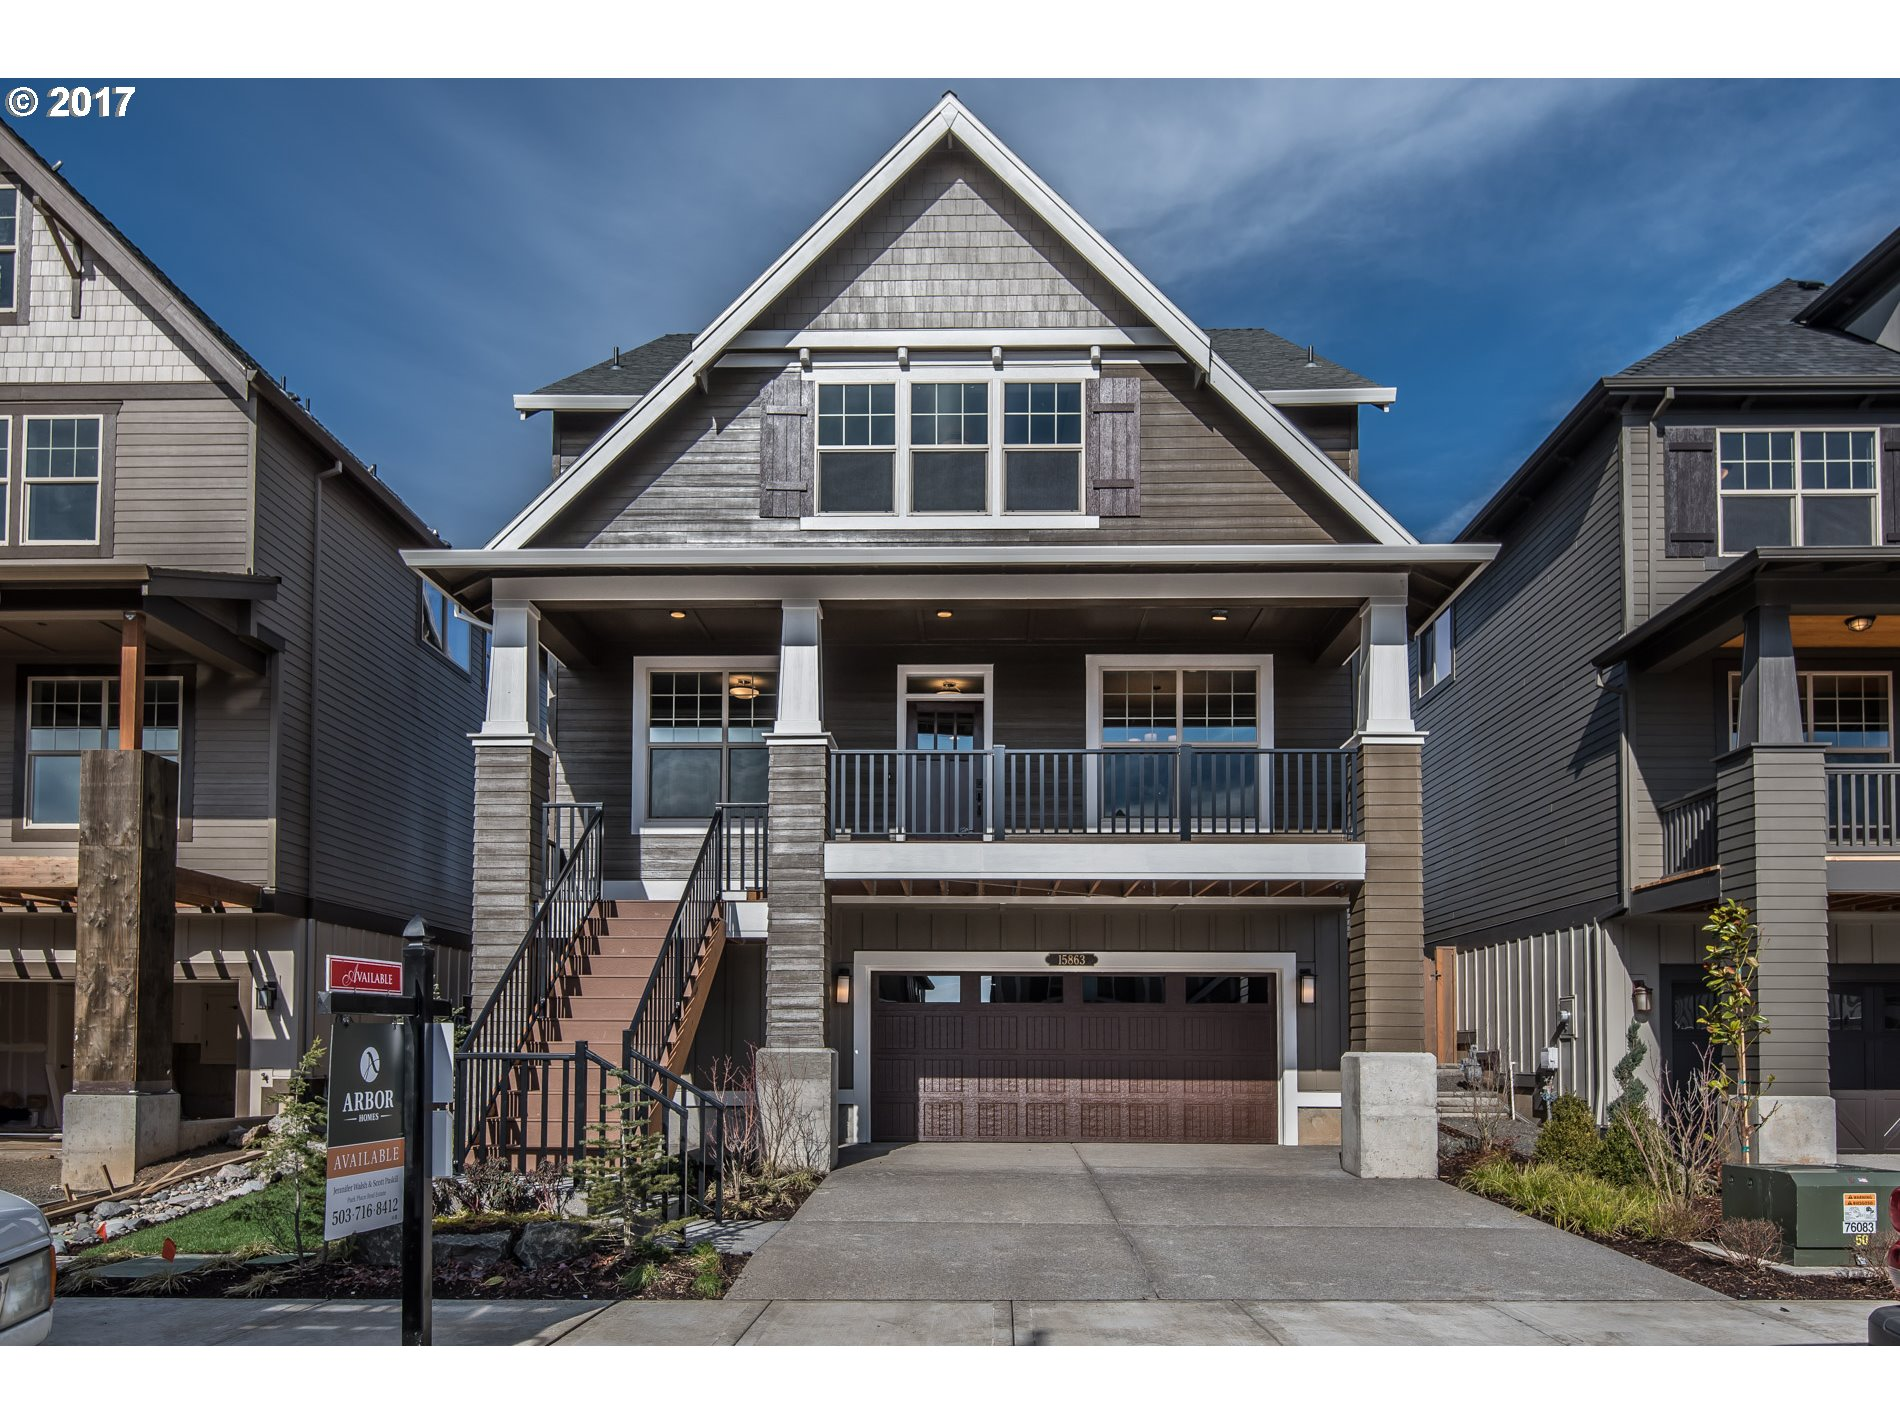 2505 sq. ft 5 bedrooms 3 bathrooms  House For Sale,Portland, OR